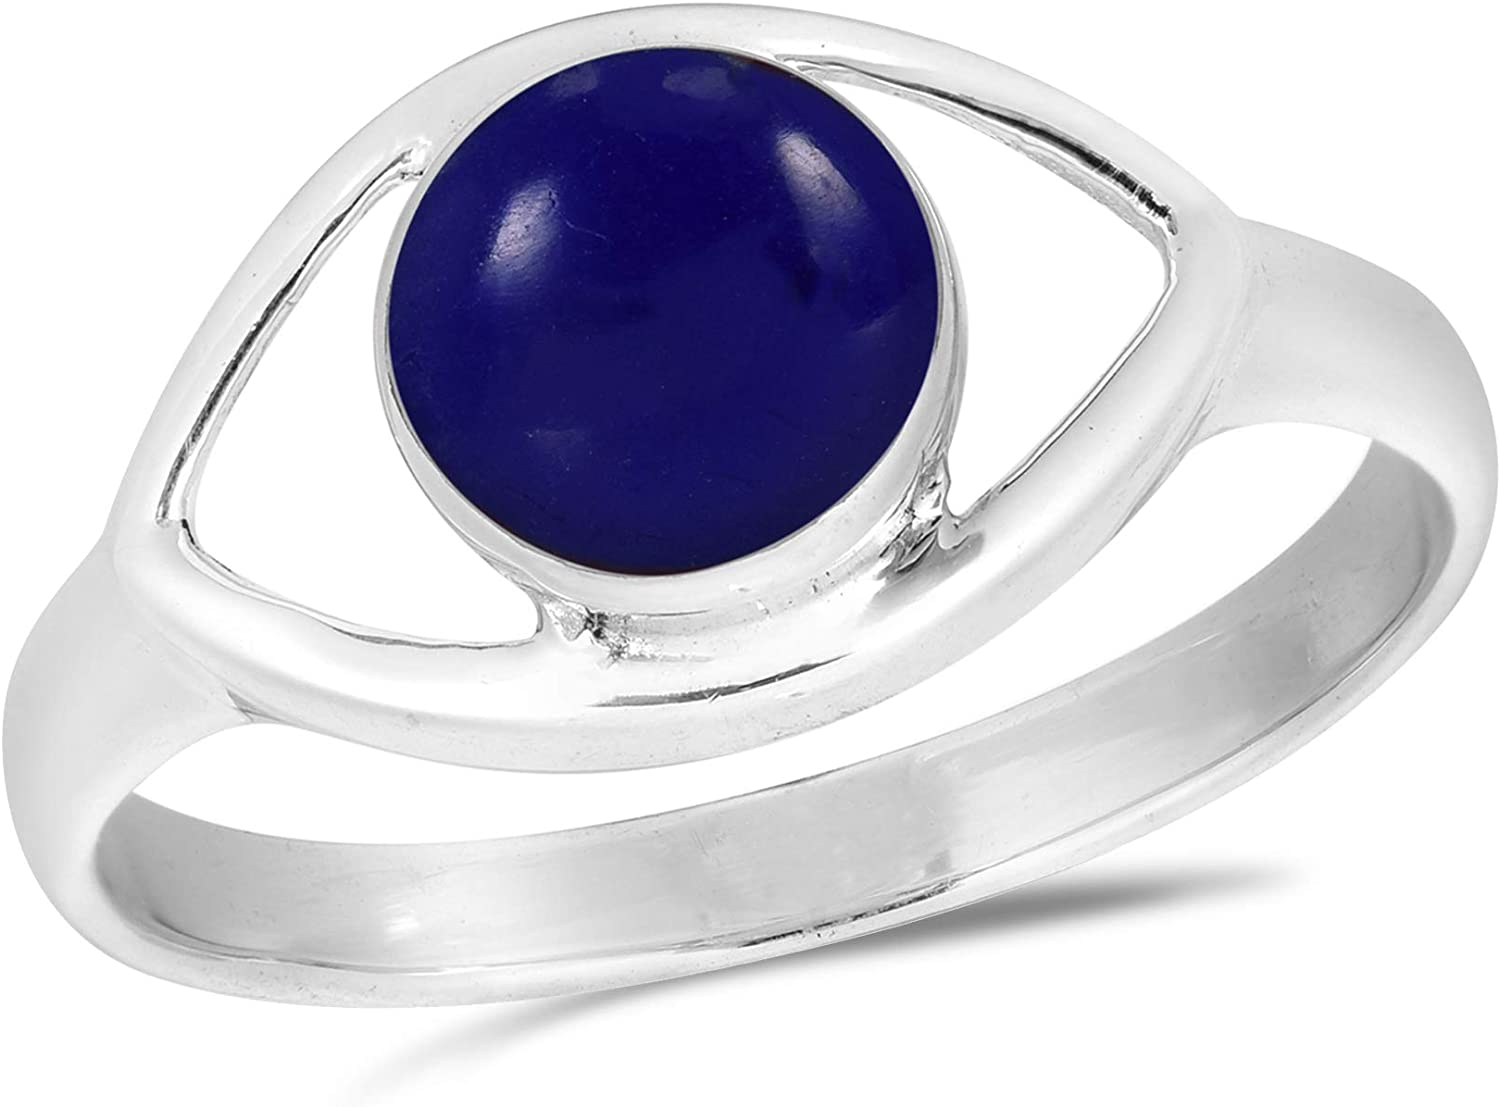 AeraVida Mystical Evil Eye with Simulated Blue Lapis Lazuli Inlay .925 Sterling Silver Ring